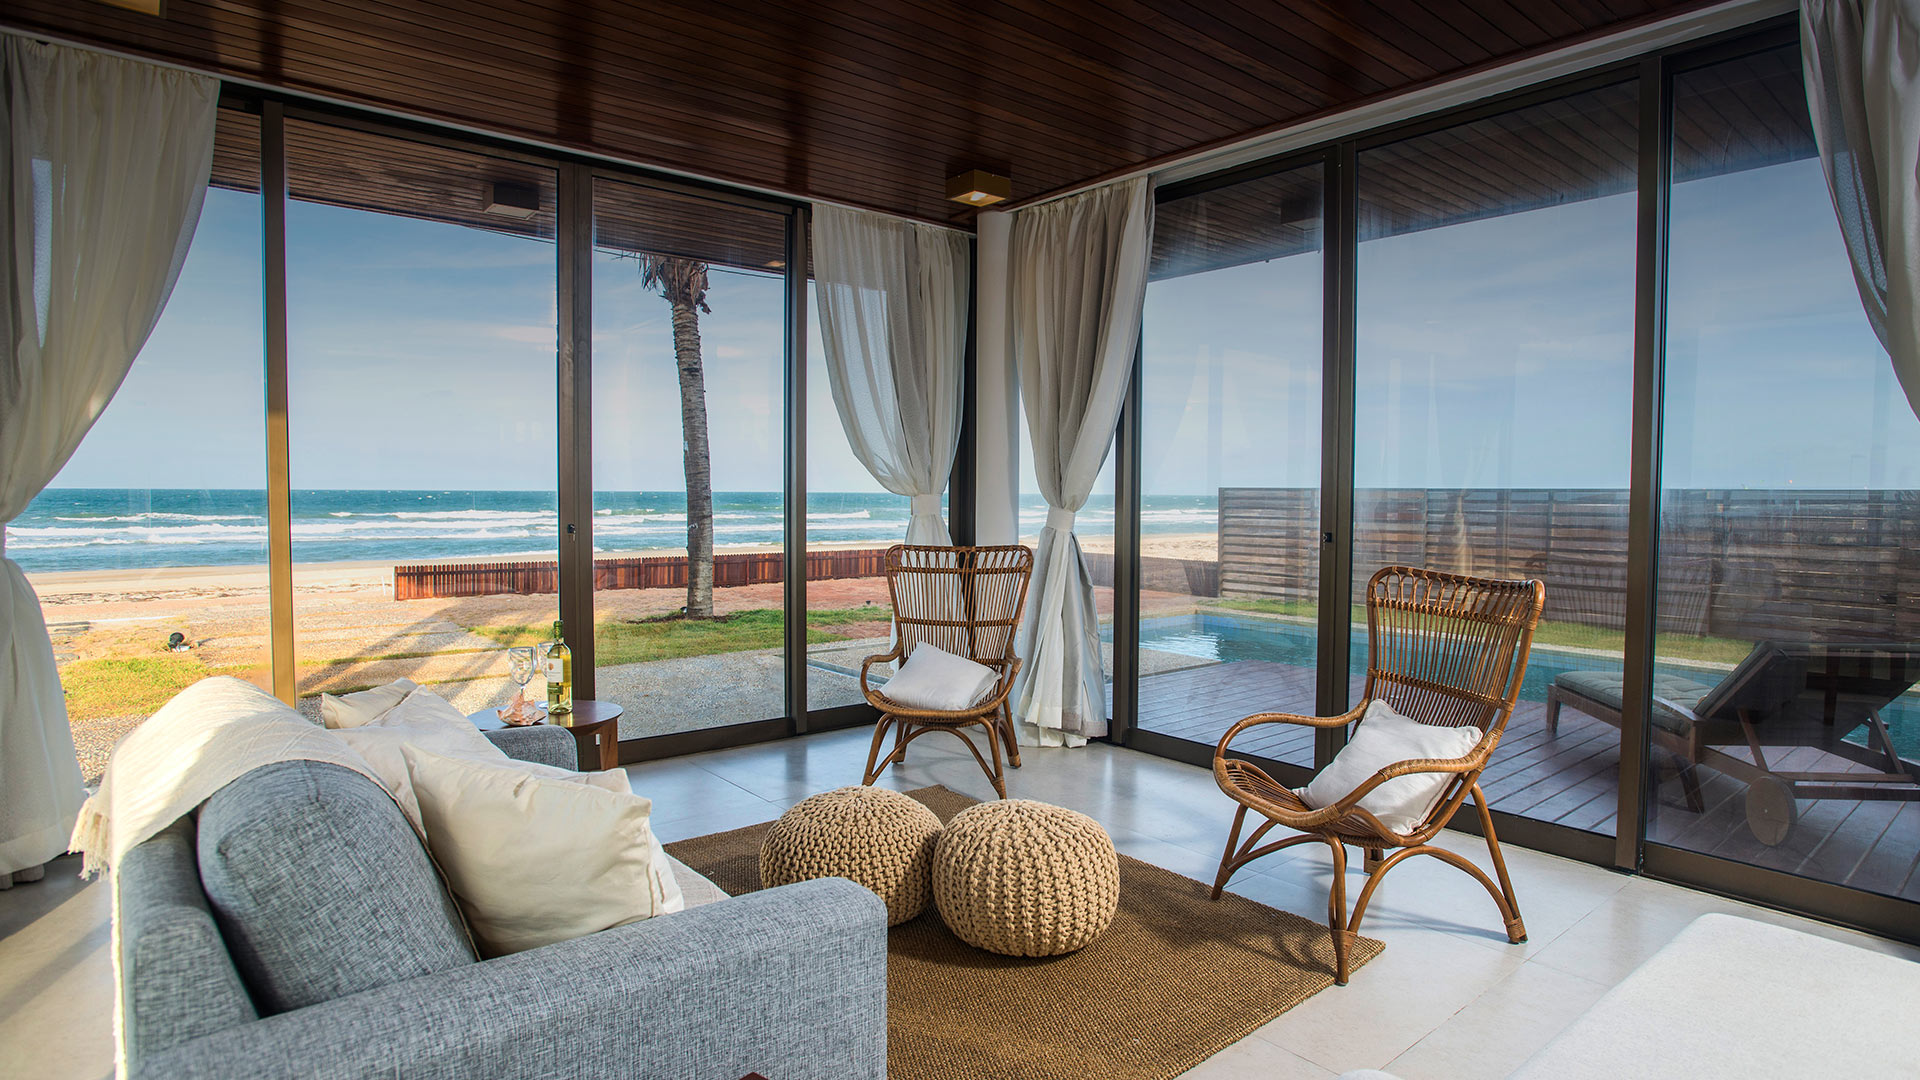 HUGE DEMAND FOR CEARÁ HOLIDAY LETS THIS SUMMER